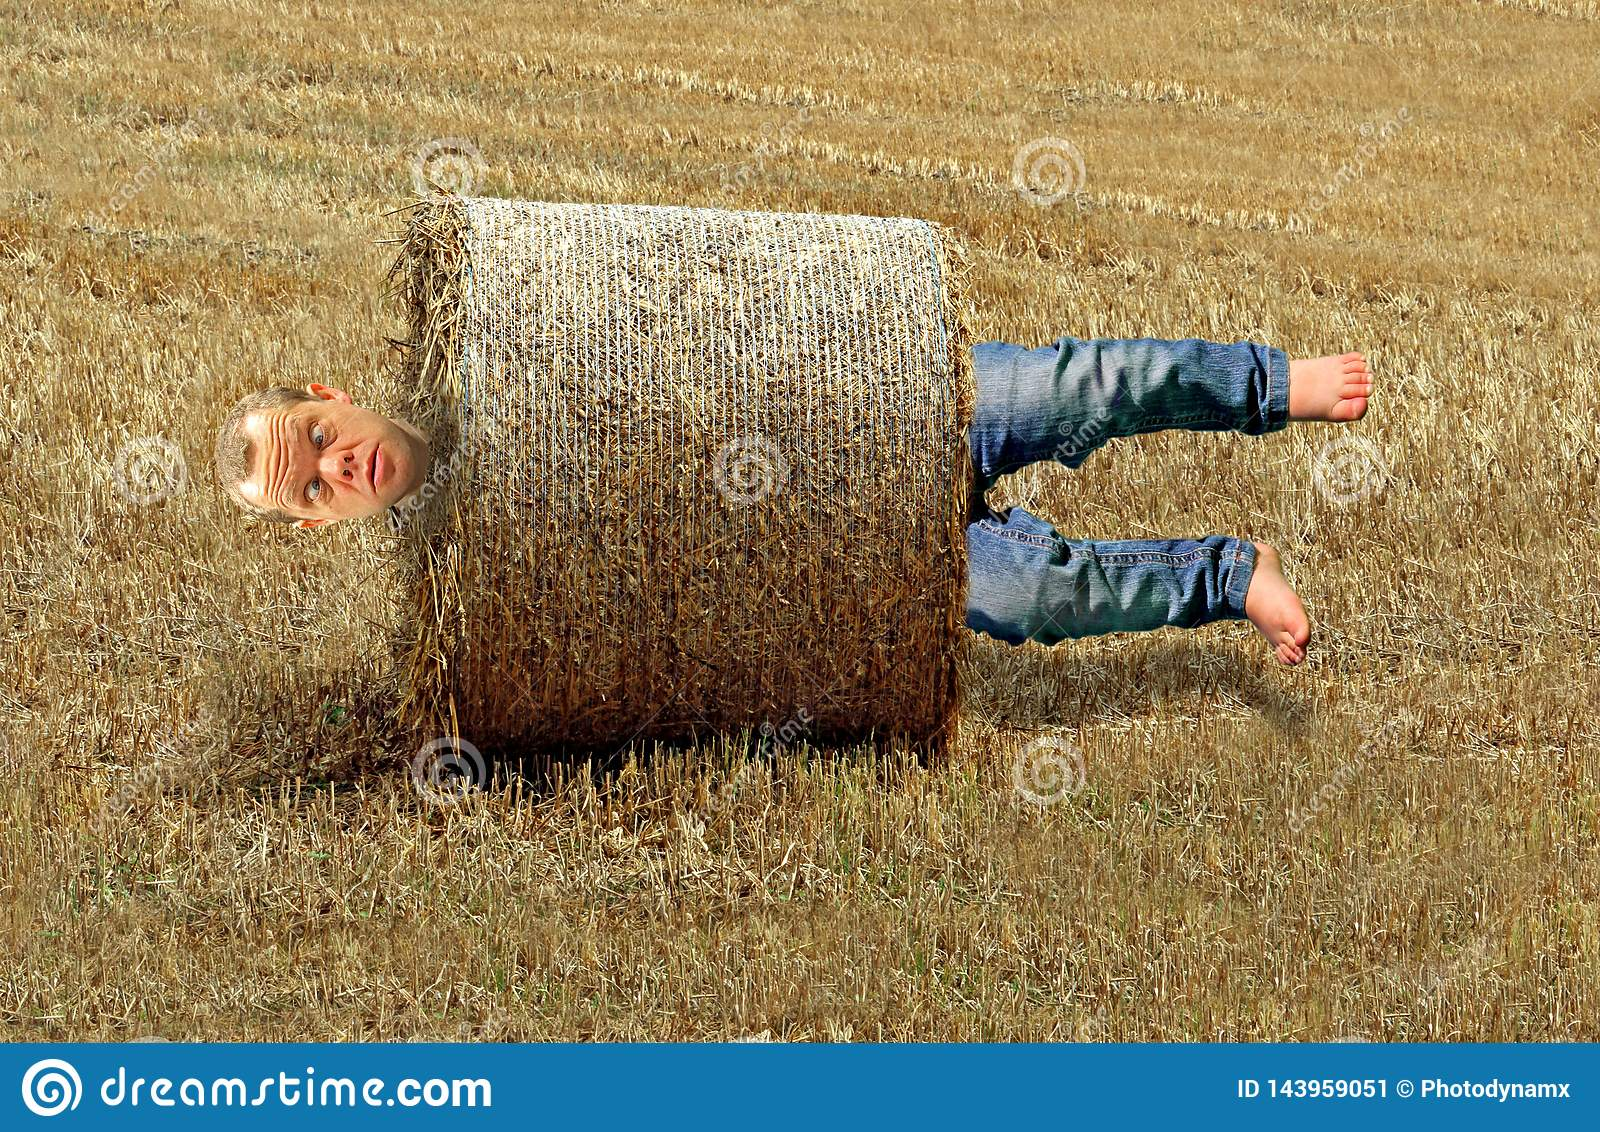 Man rolled up in farming hay bale accident stuck between a rock and a hard place